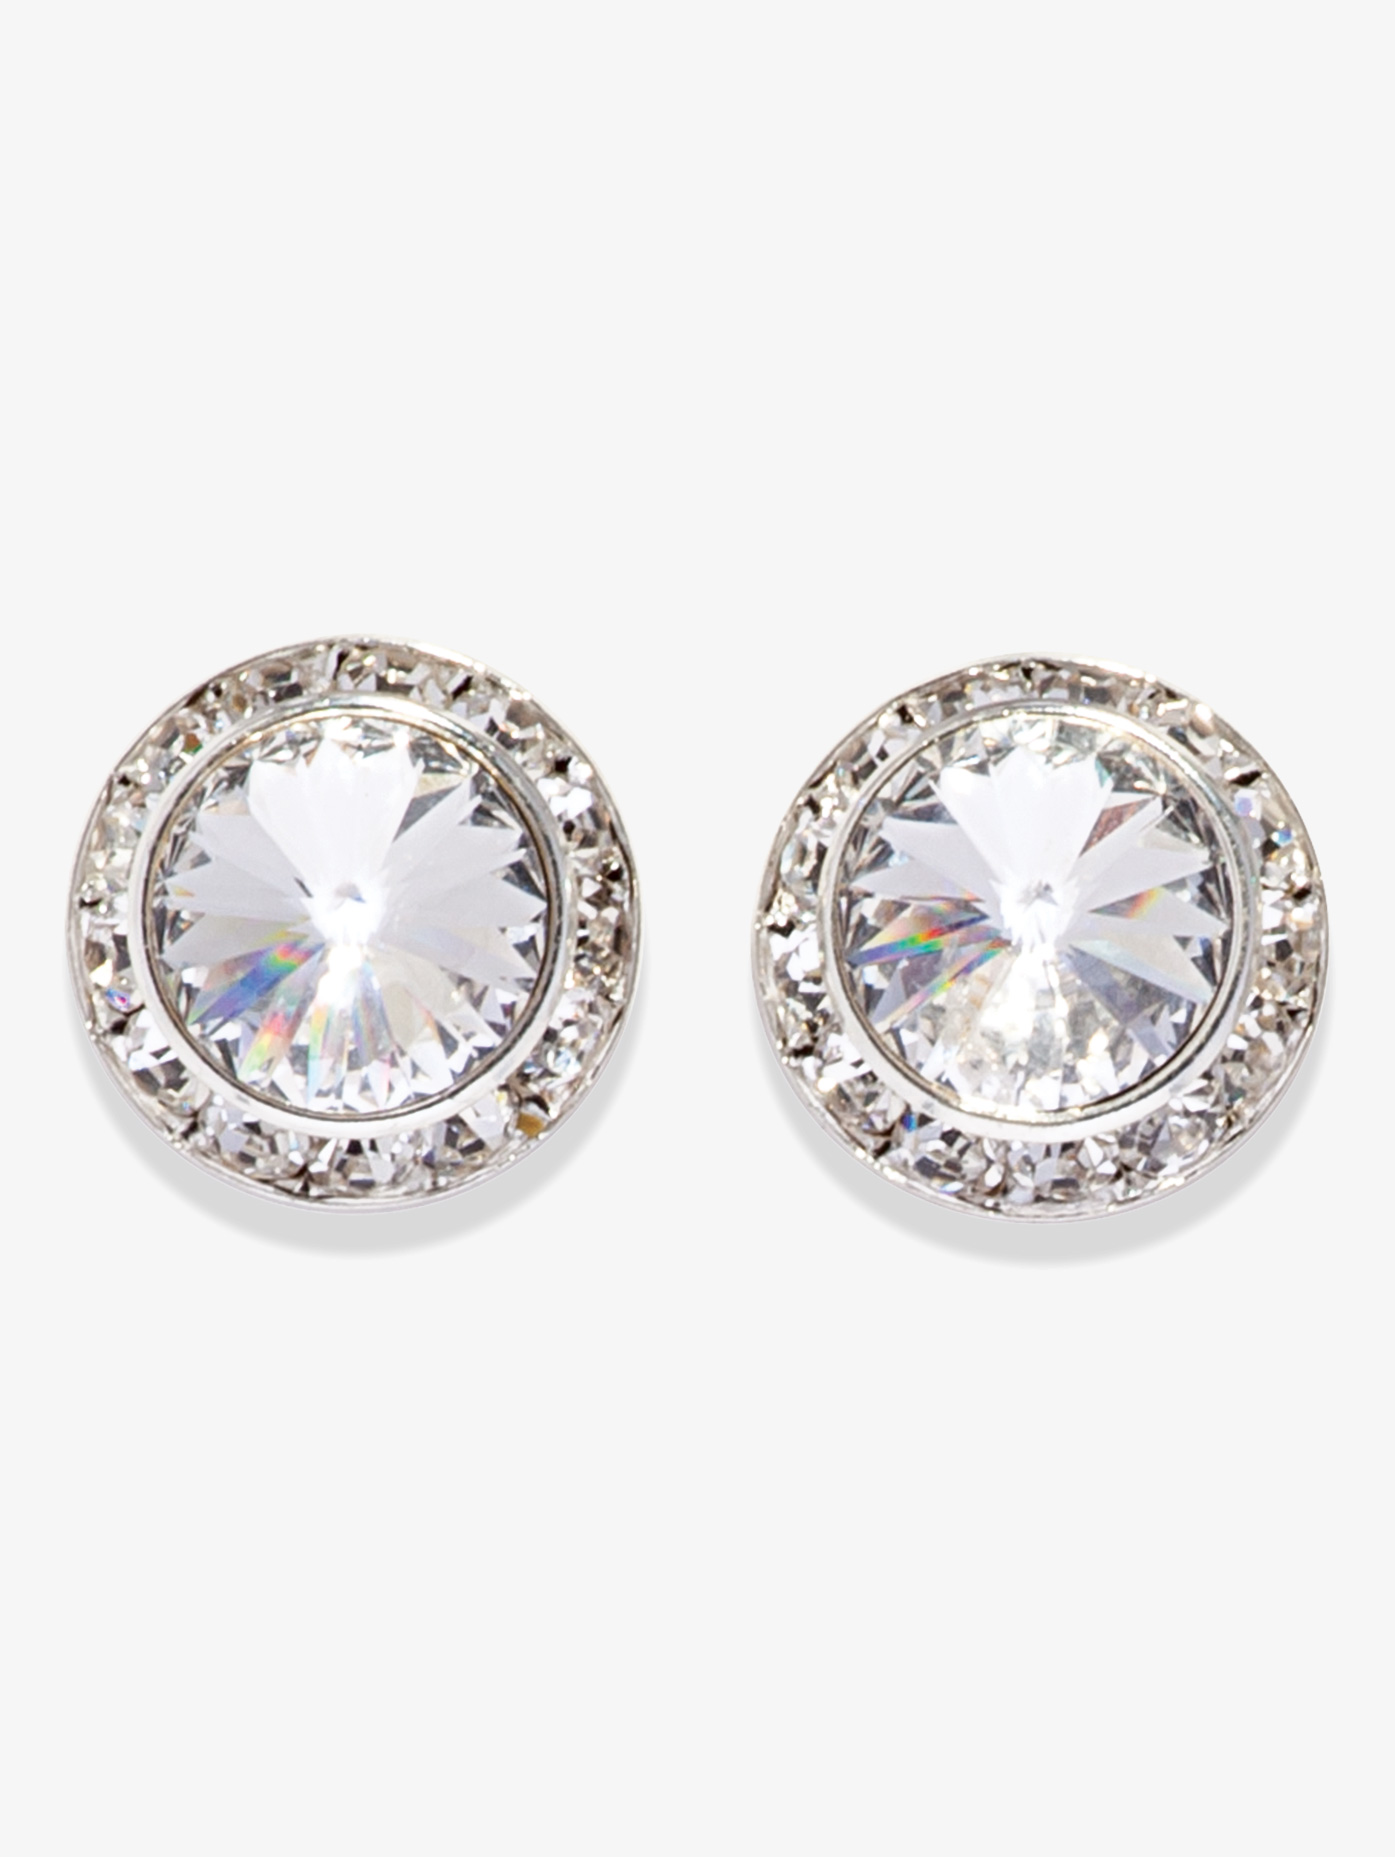 Best Deals & Free Shipping - Swarovski Outlet Canada Online